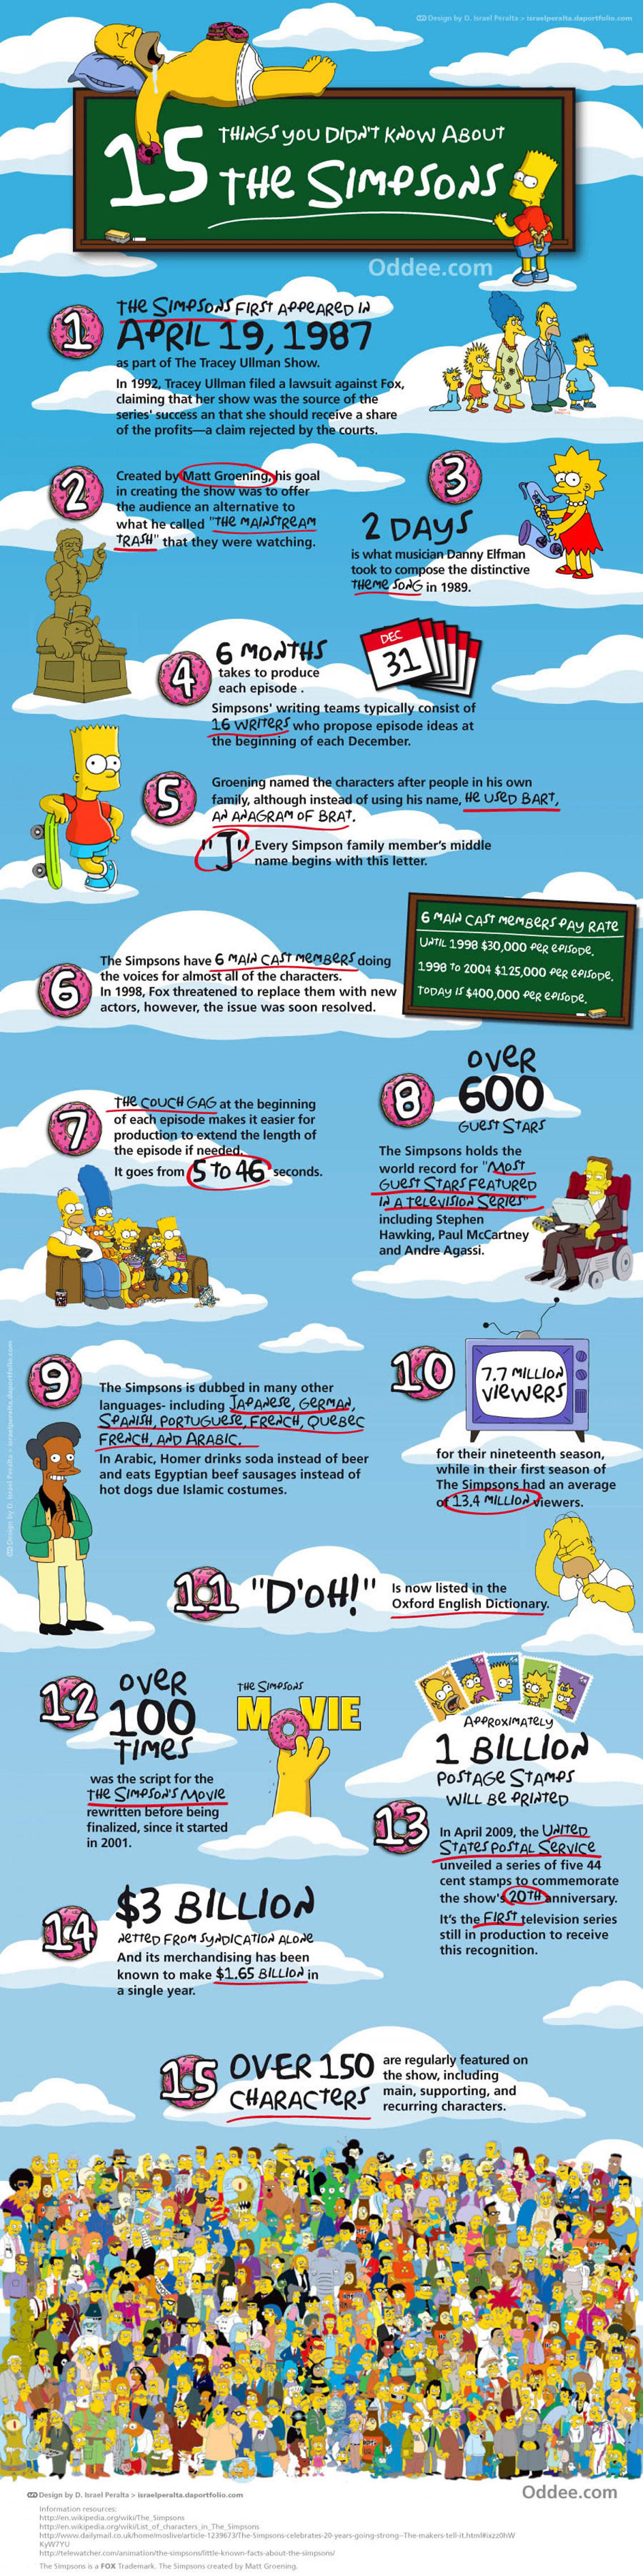 15 Things You Didn't Know About The Simpsons Infographic